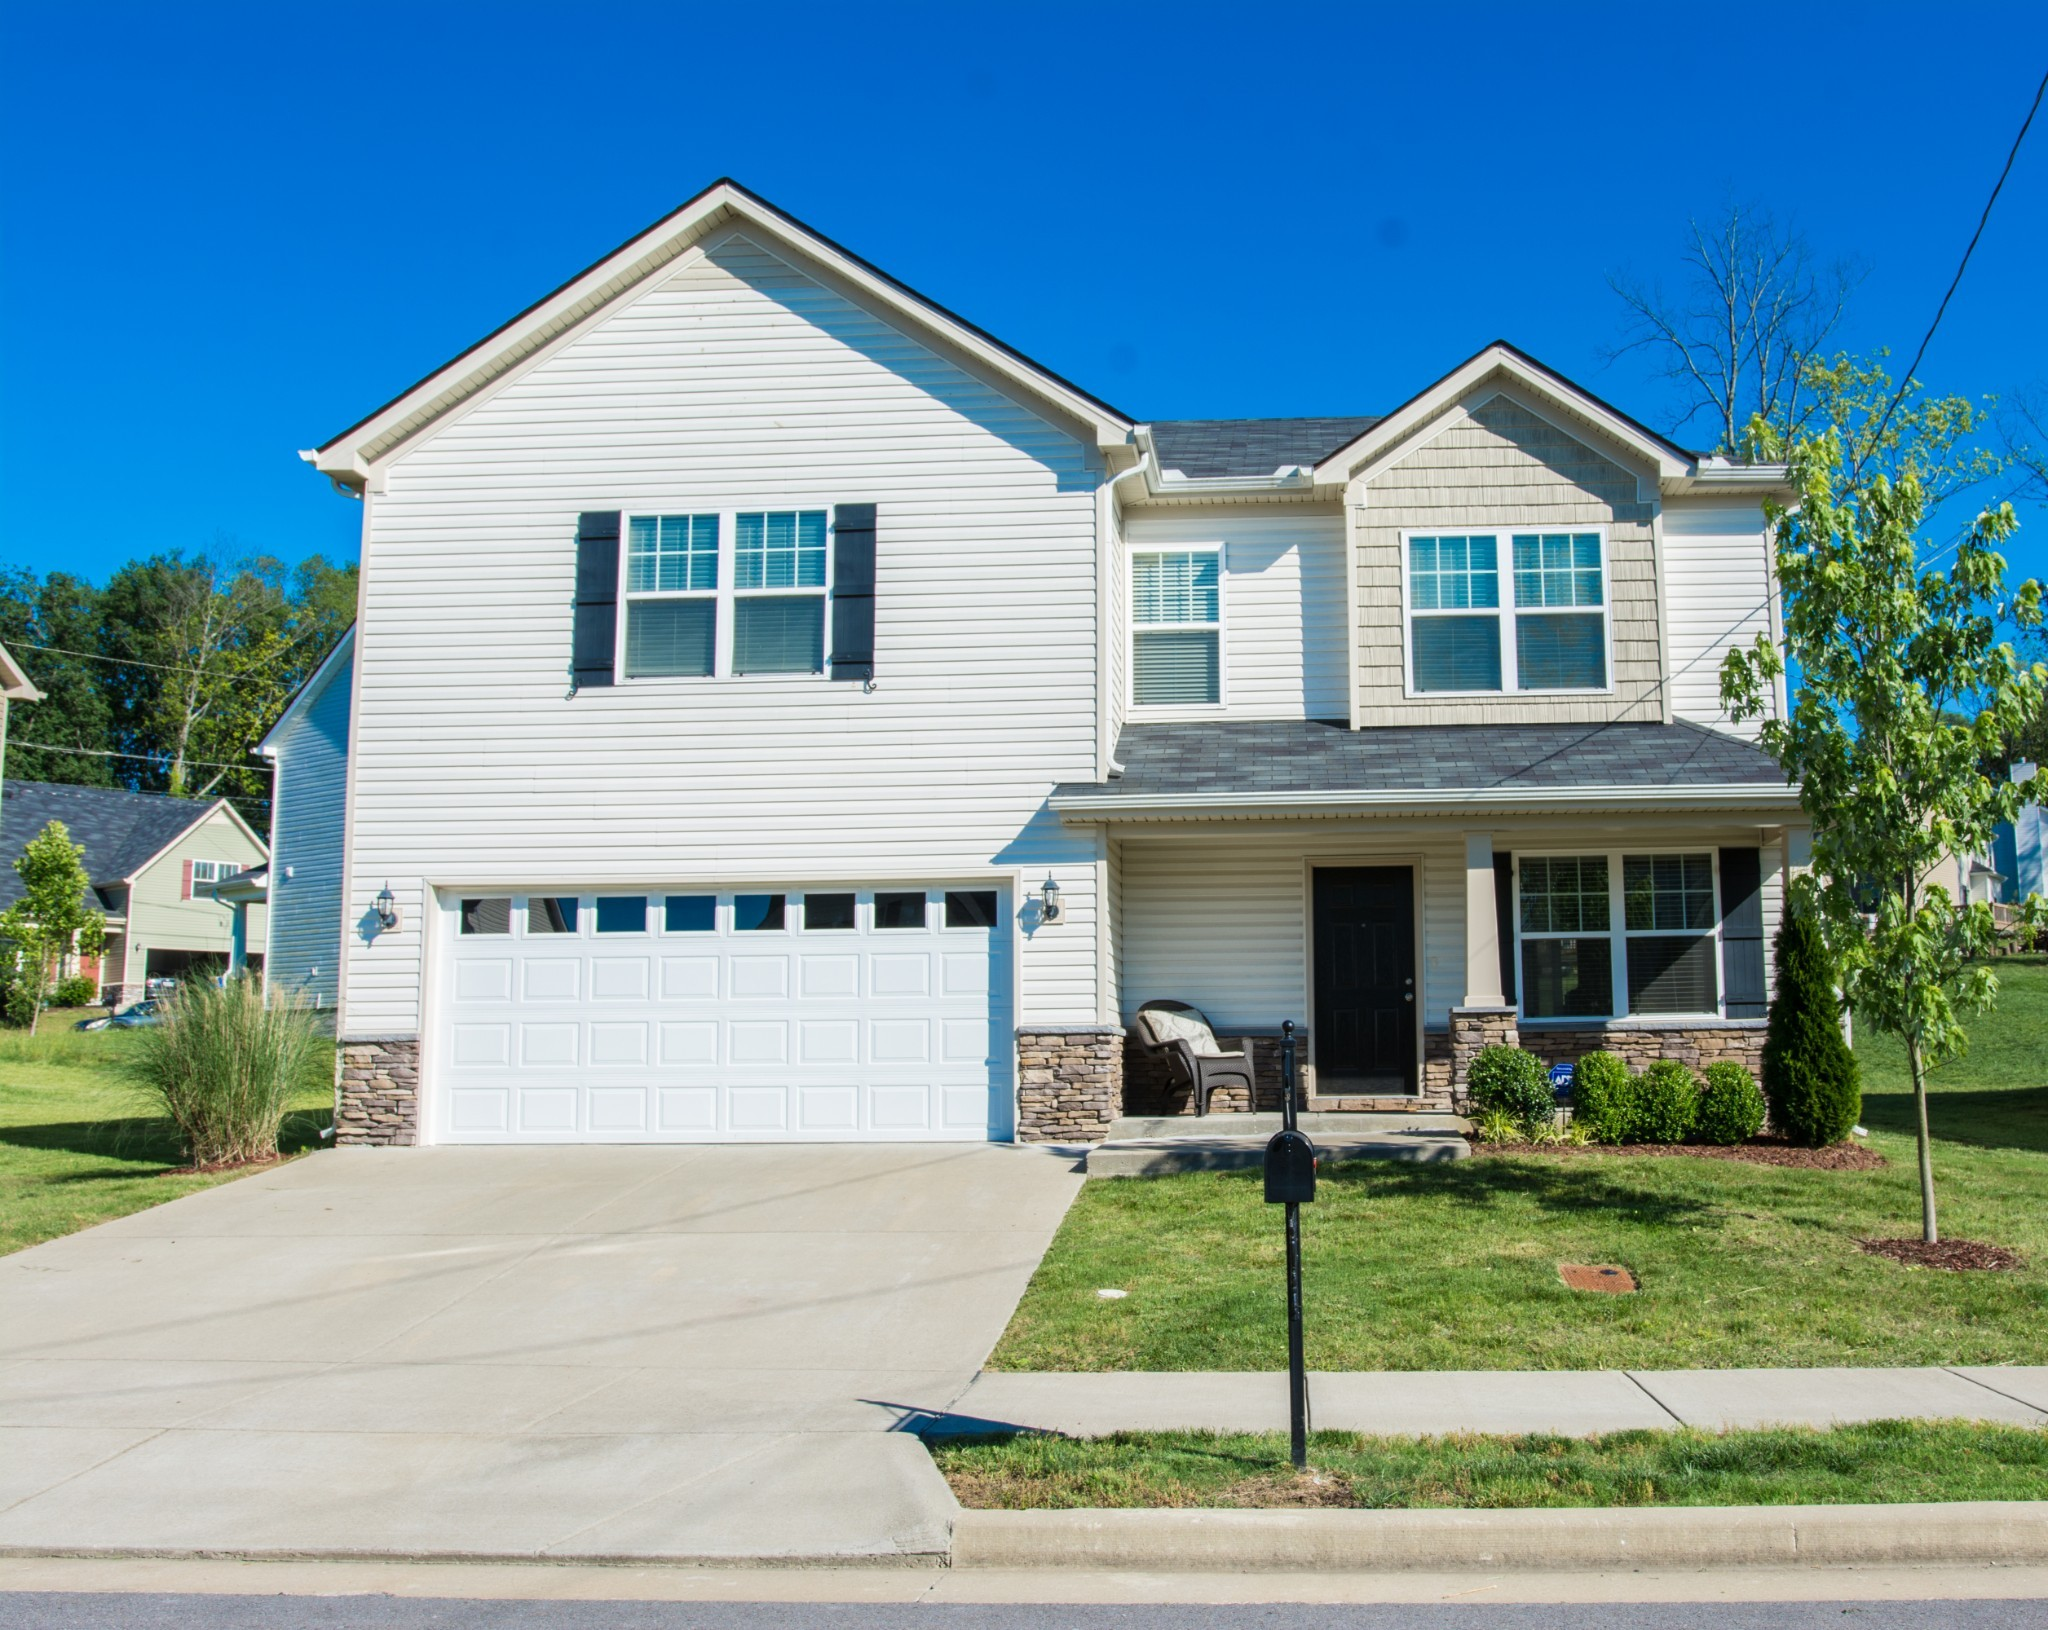 BACK ON THE MARKET!! Contract fell through.  Well maintained 3 bed, 2.5 baths, 2 car garage home with spacious owner's suite on second level.  All kitchen appliances to remain. Easy access to I-24 for Nashville and Rutherford county commutes.  Motivated seller.  This home won't last long.